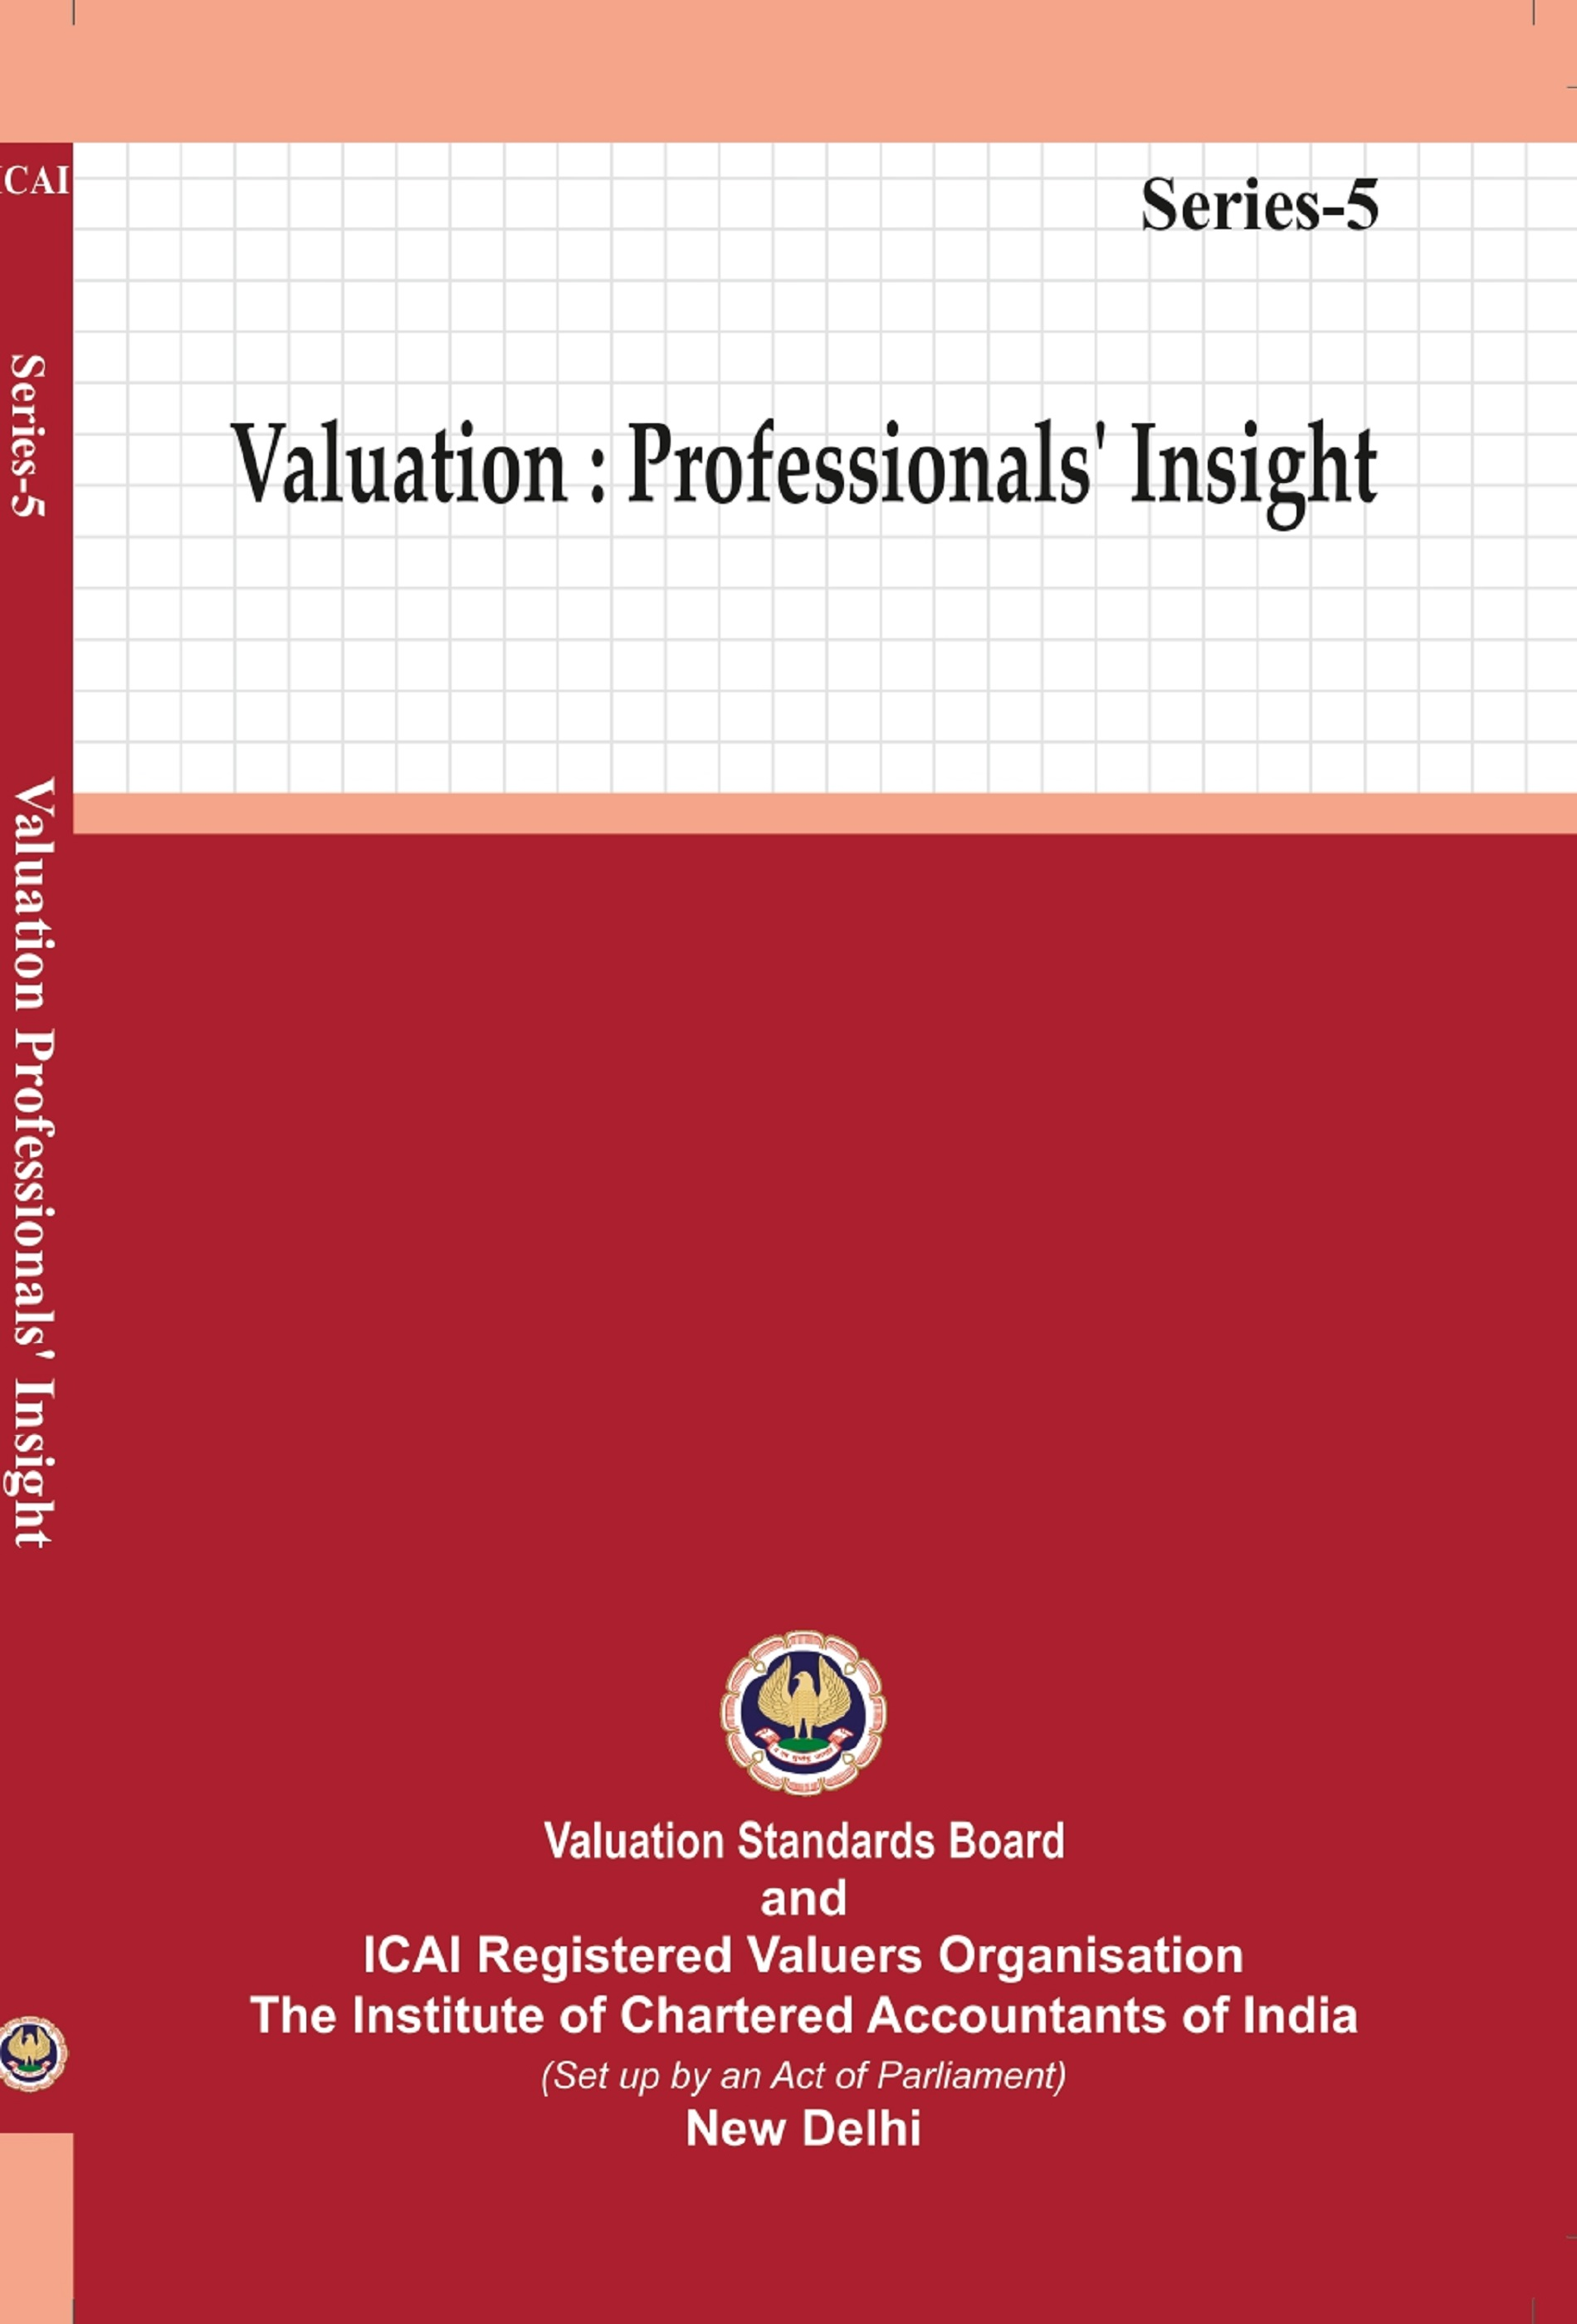 Valuation : Professionals' Insight, Series-5 (February, 2021)